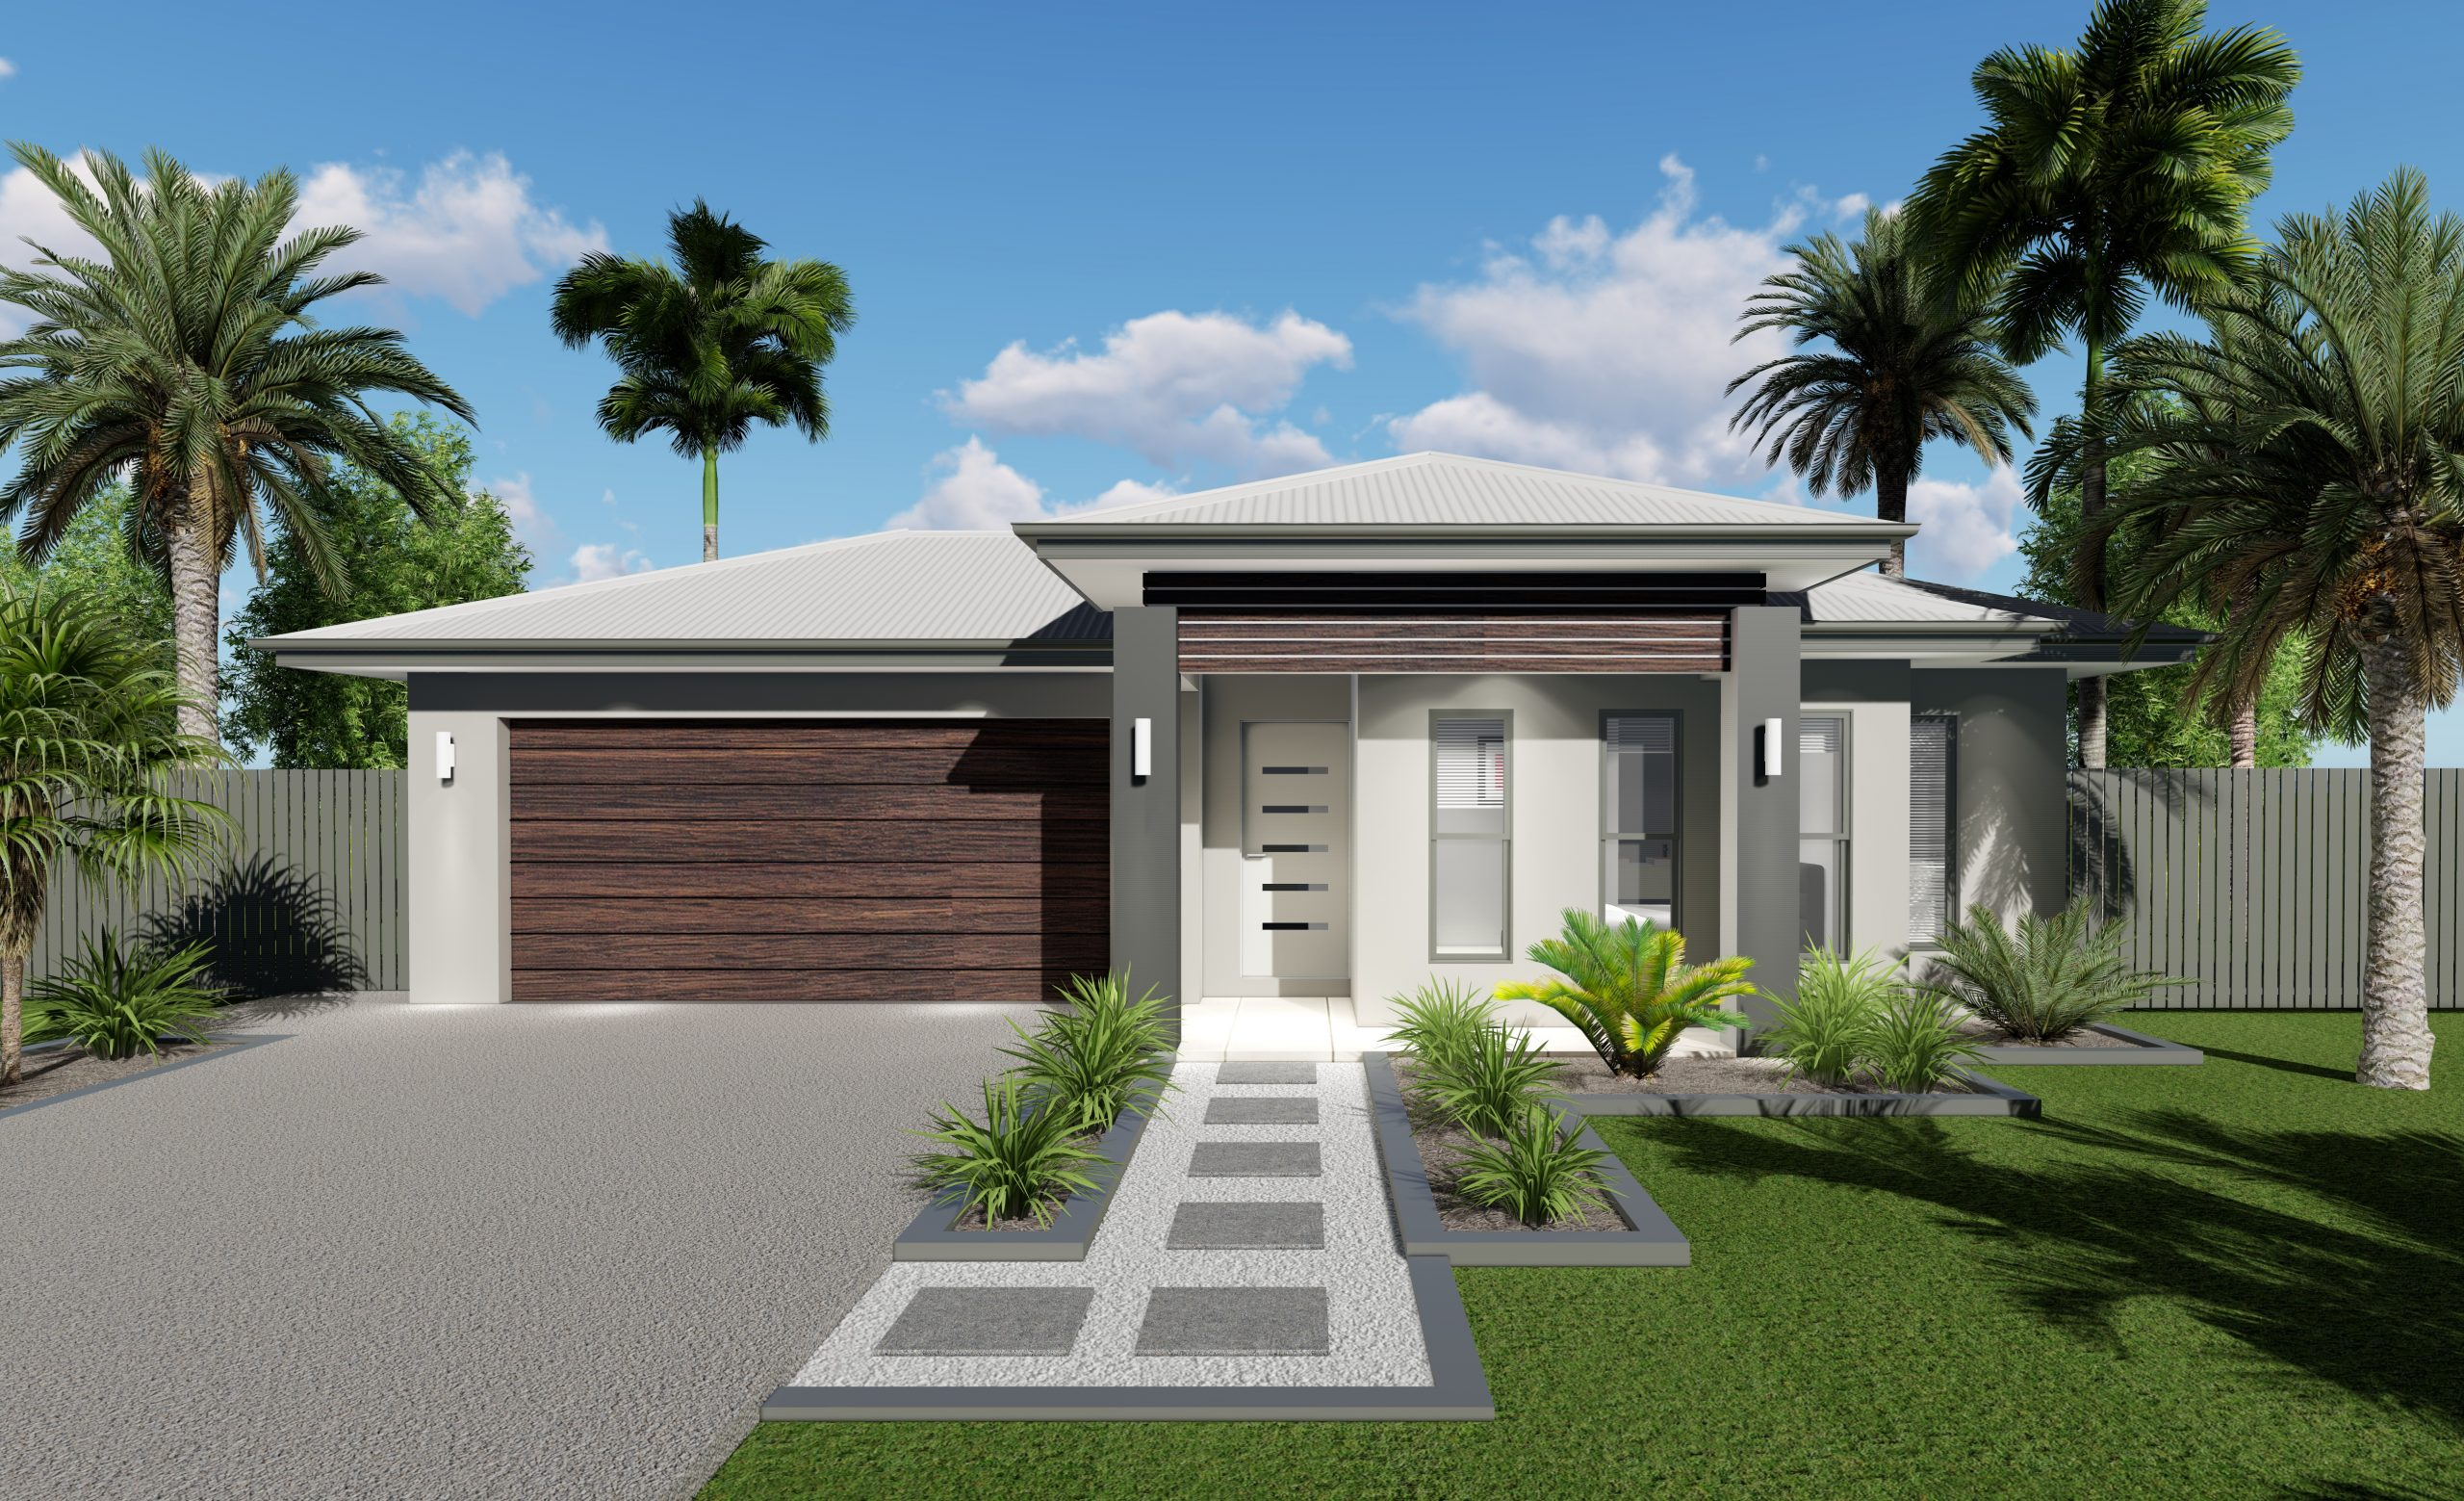 Lot 65 Jett Lane – Keir Constructions